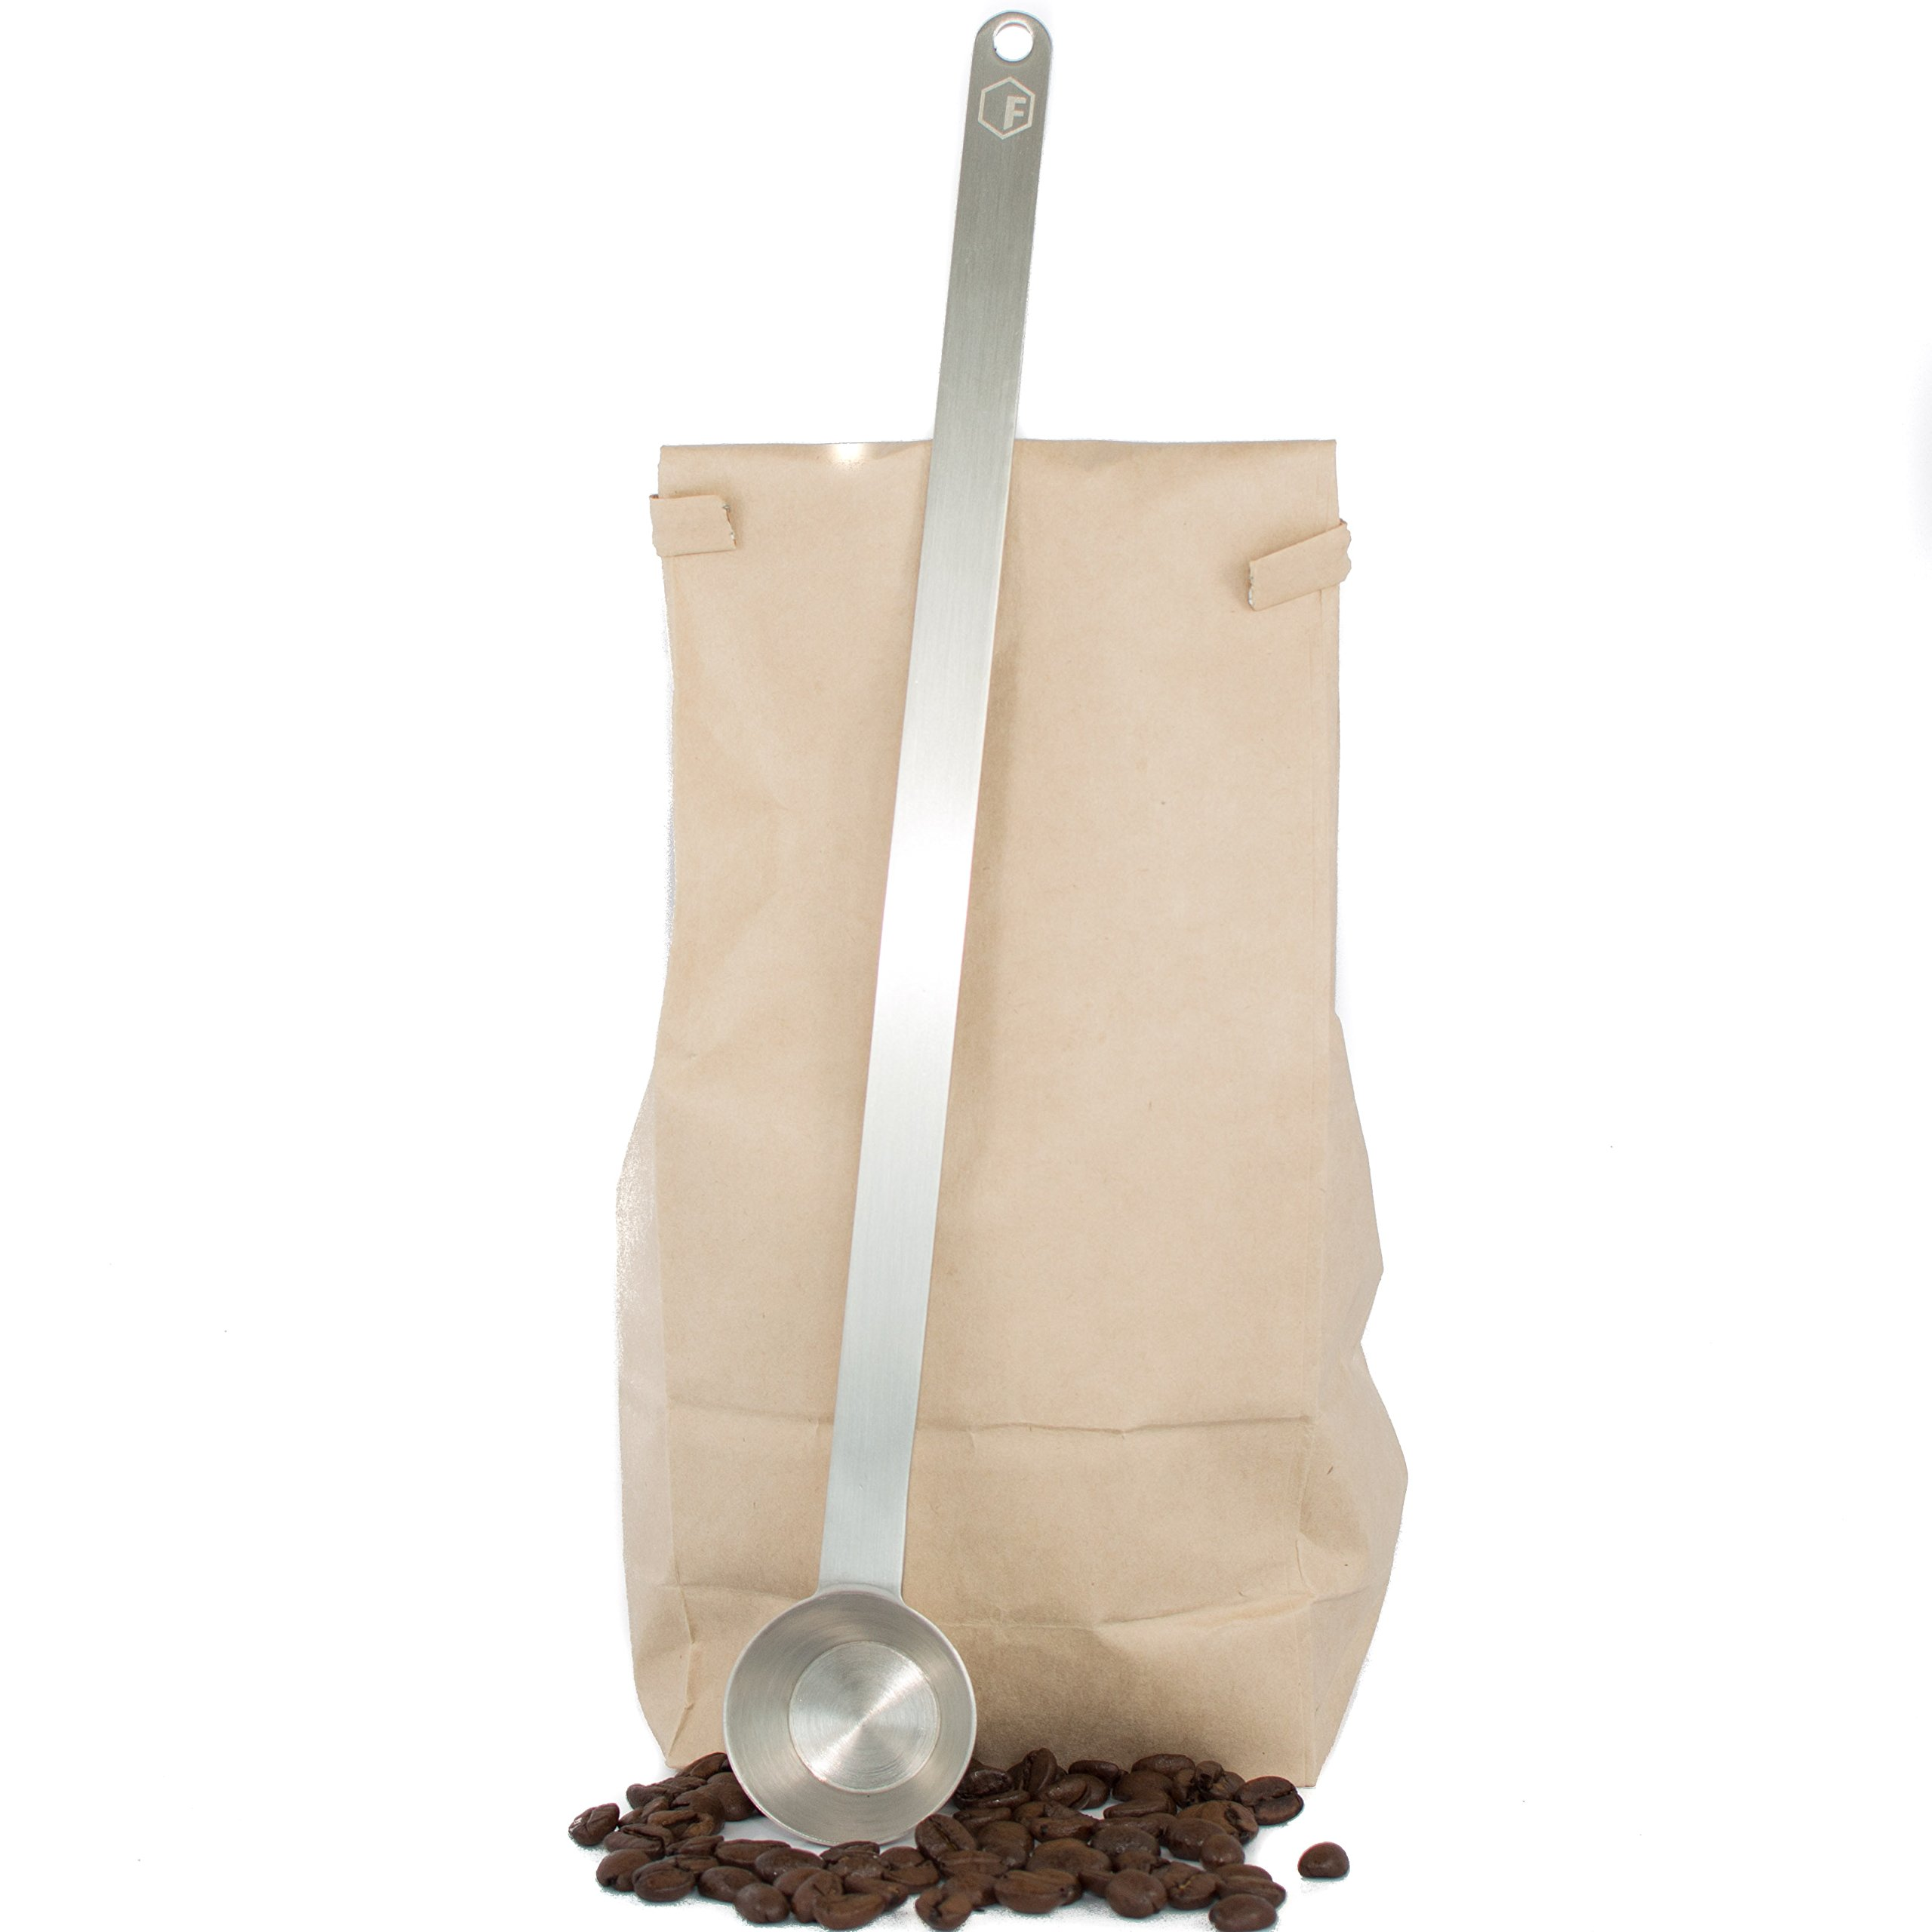 11.5'' Extra Long Coffee Scoop - 1 Tablespoon - Premium Grade 18/8 Stainless Steel - Reaches Bottom of Coffee Bags